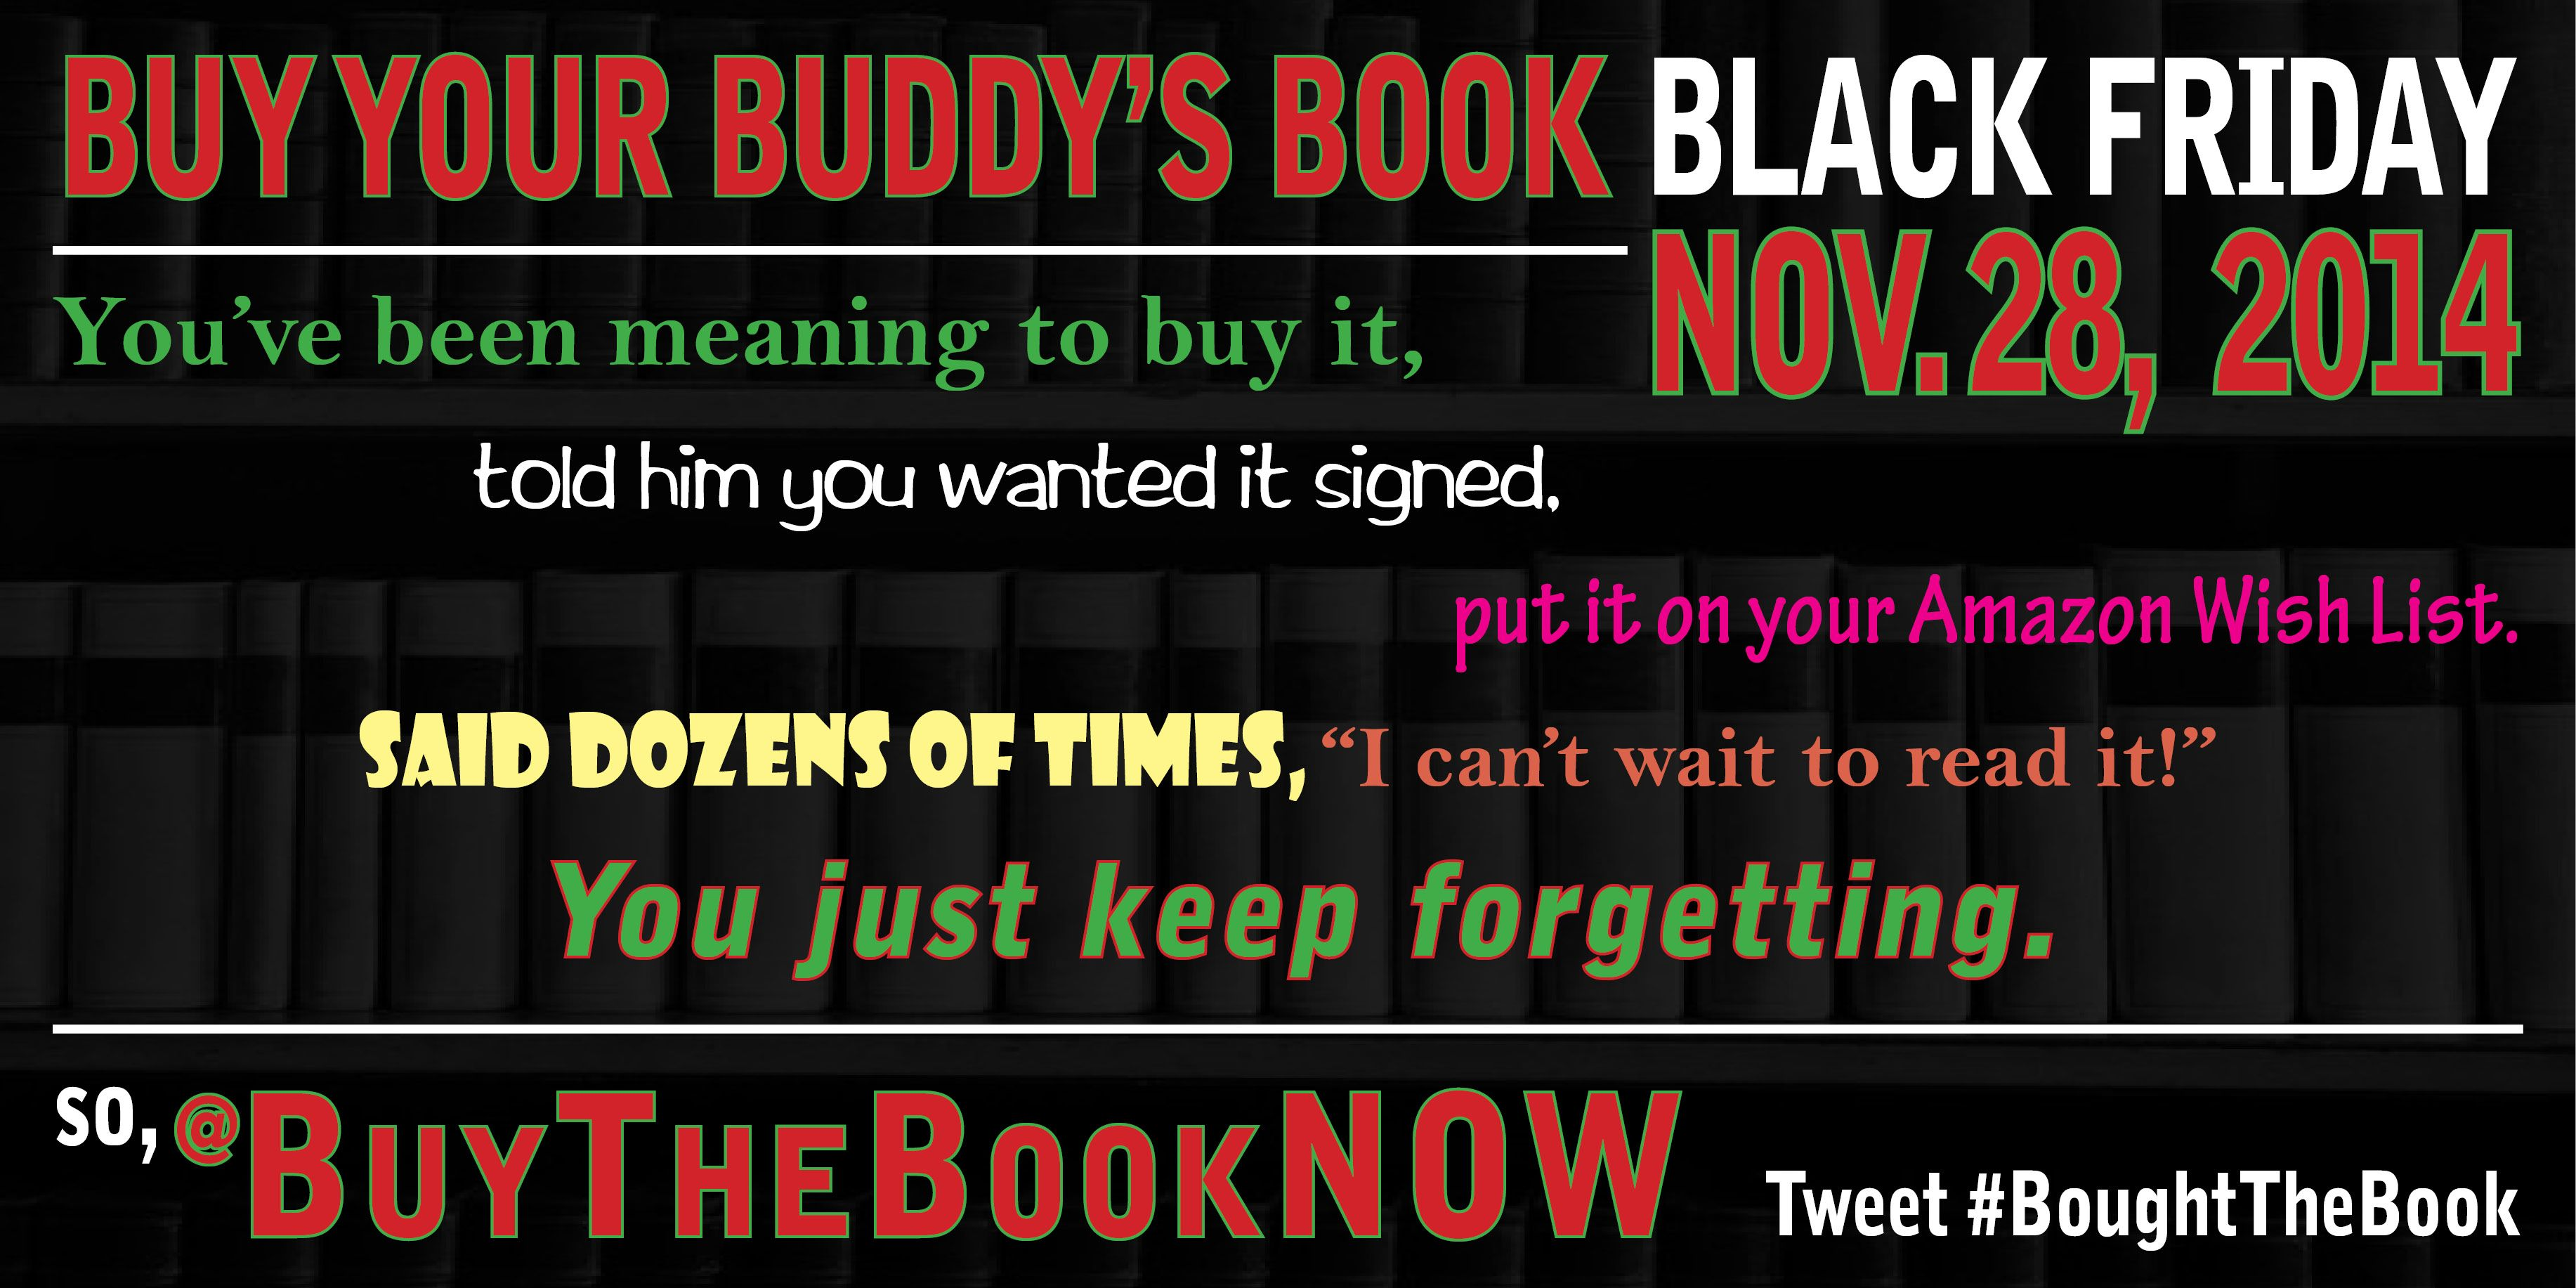 For Twitter Buythebooknow Buy Your Buddy S Book Black